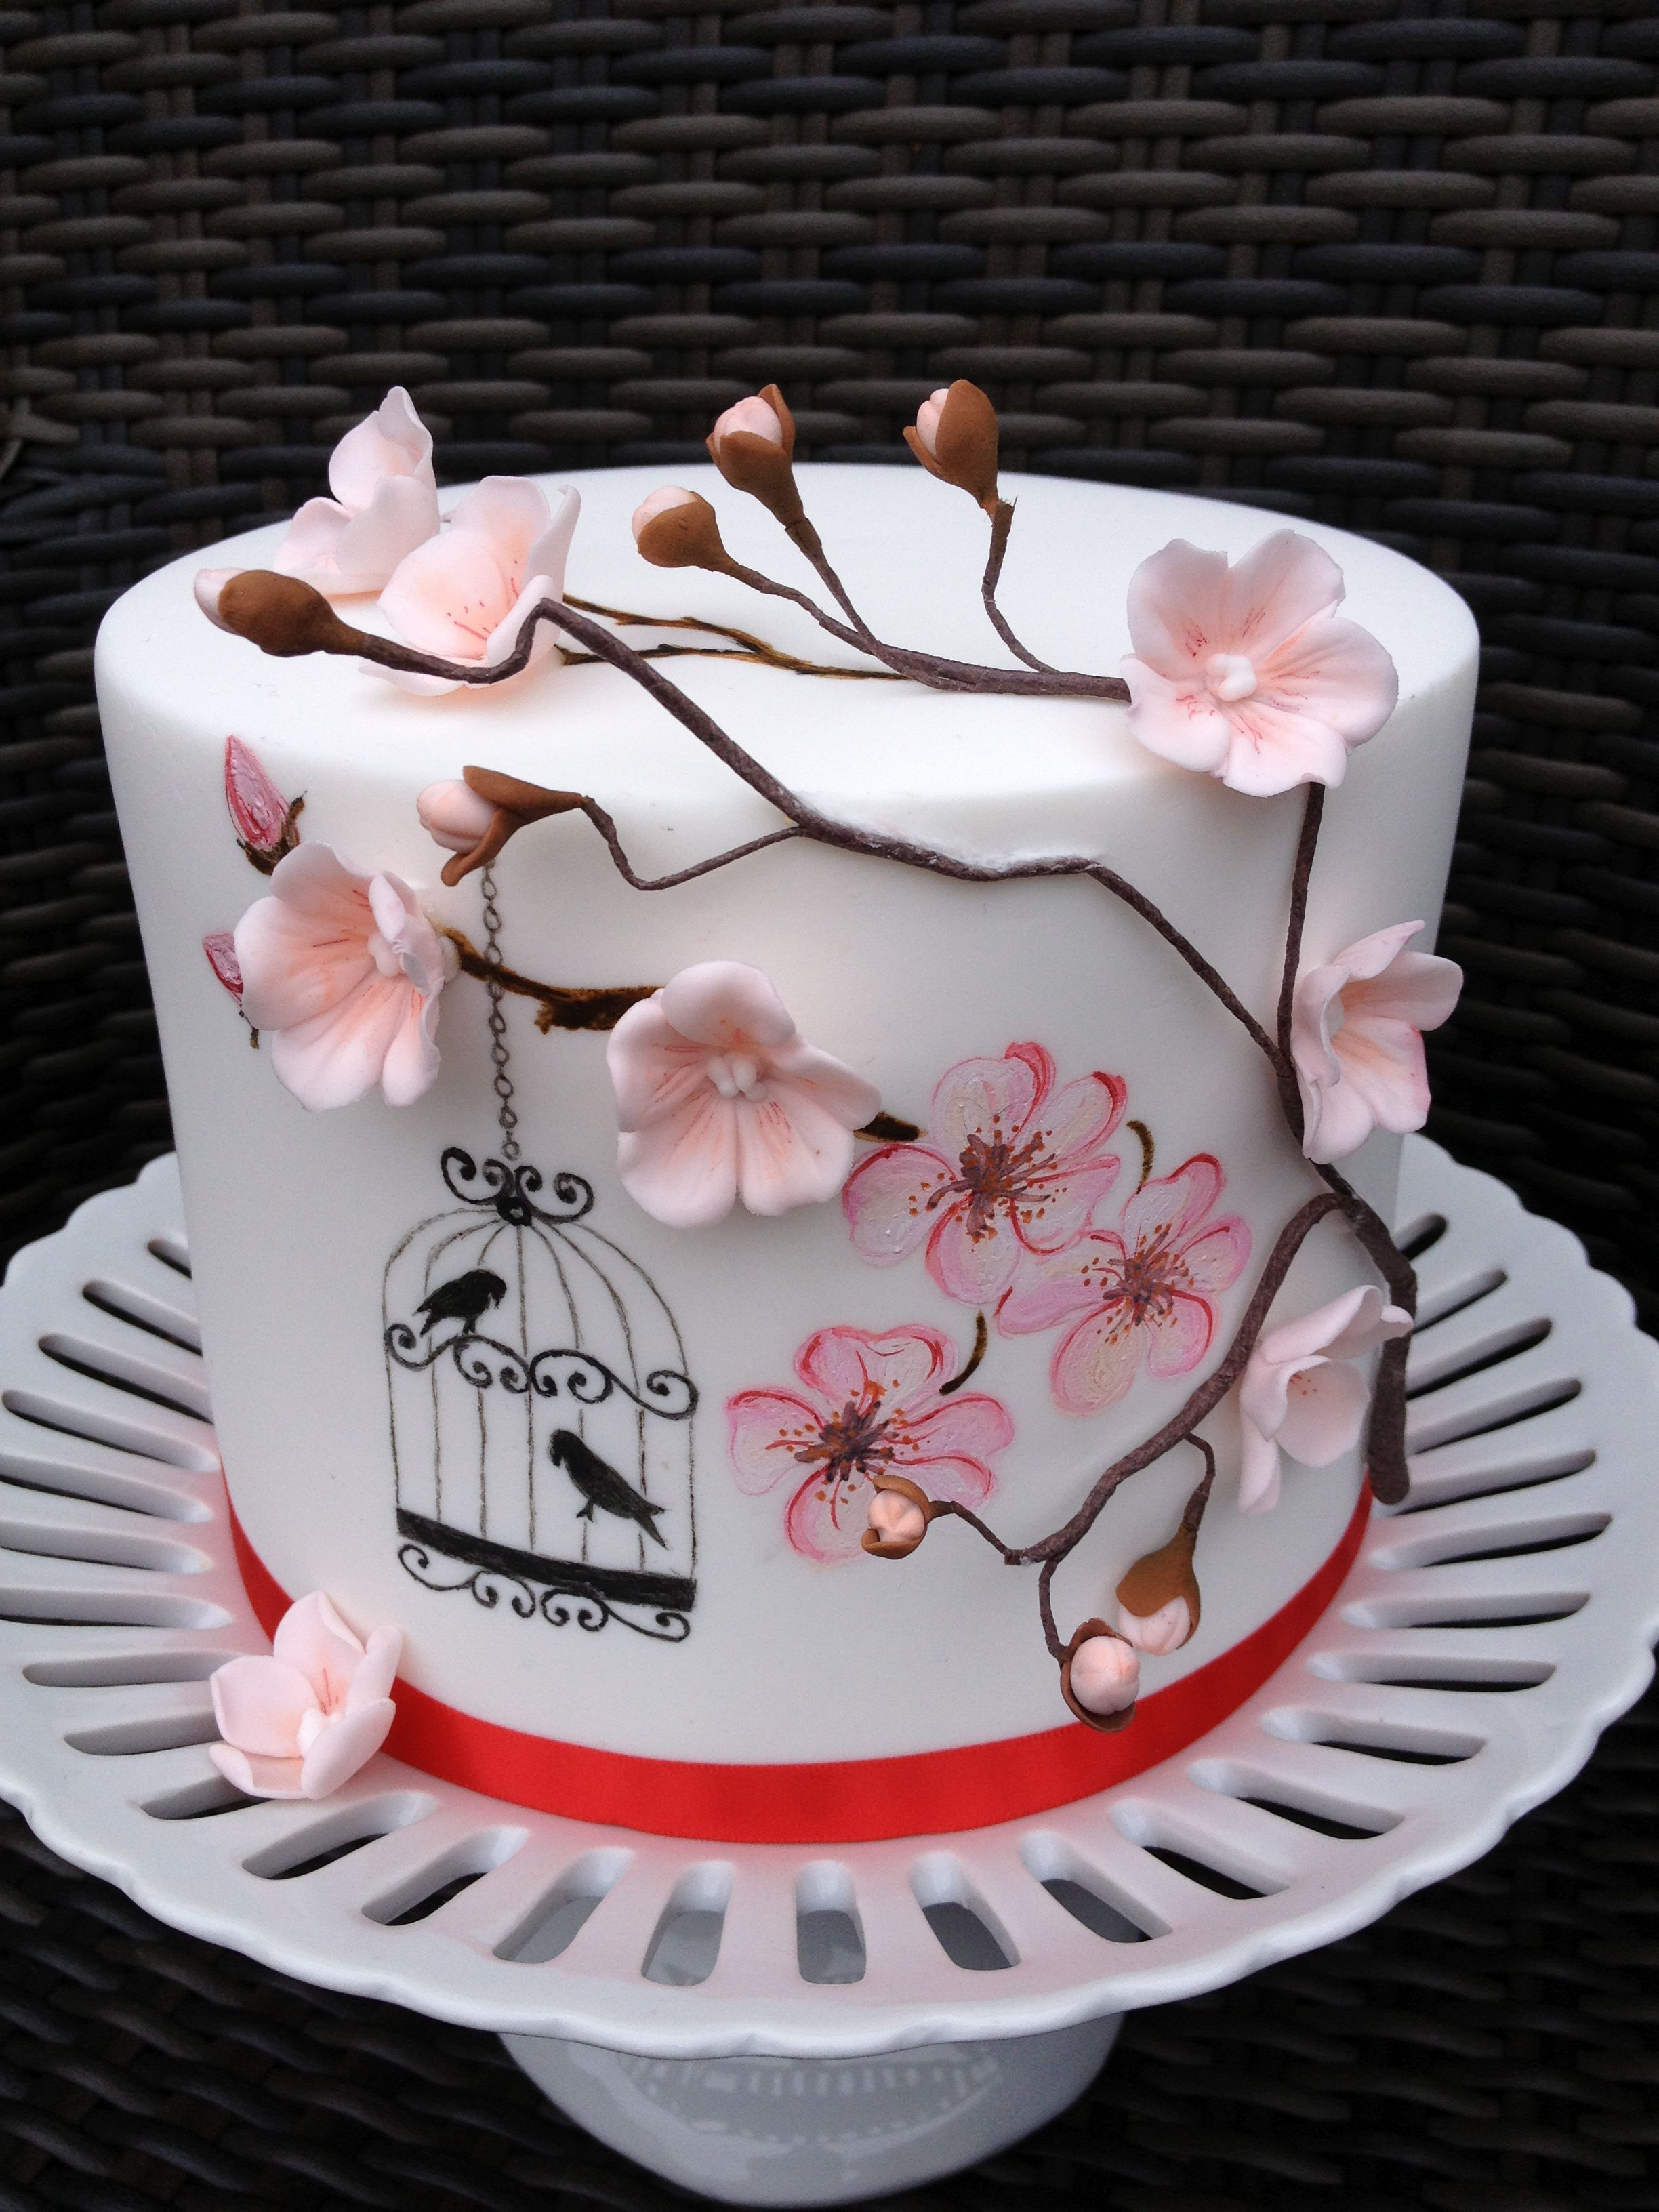 Einfacher Fondant Kuchen Hand Painted Cherry Blossoms And Birdcage Holiday